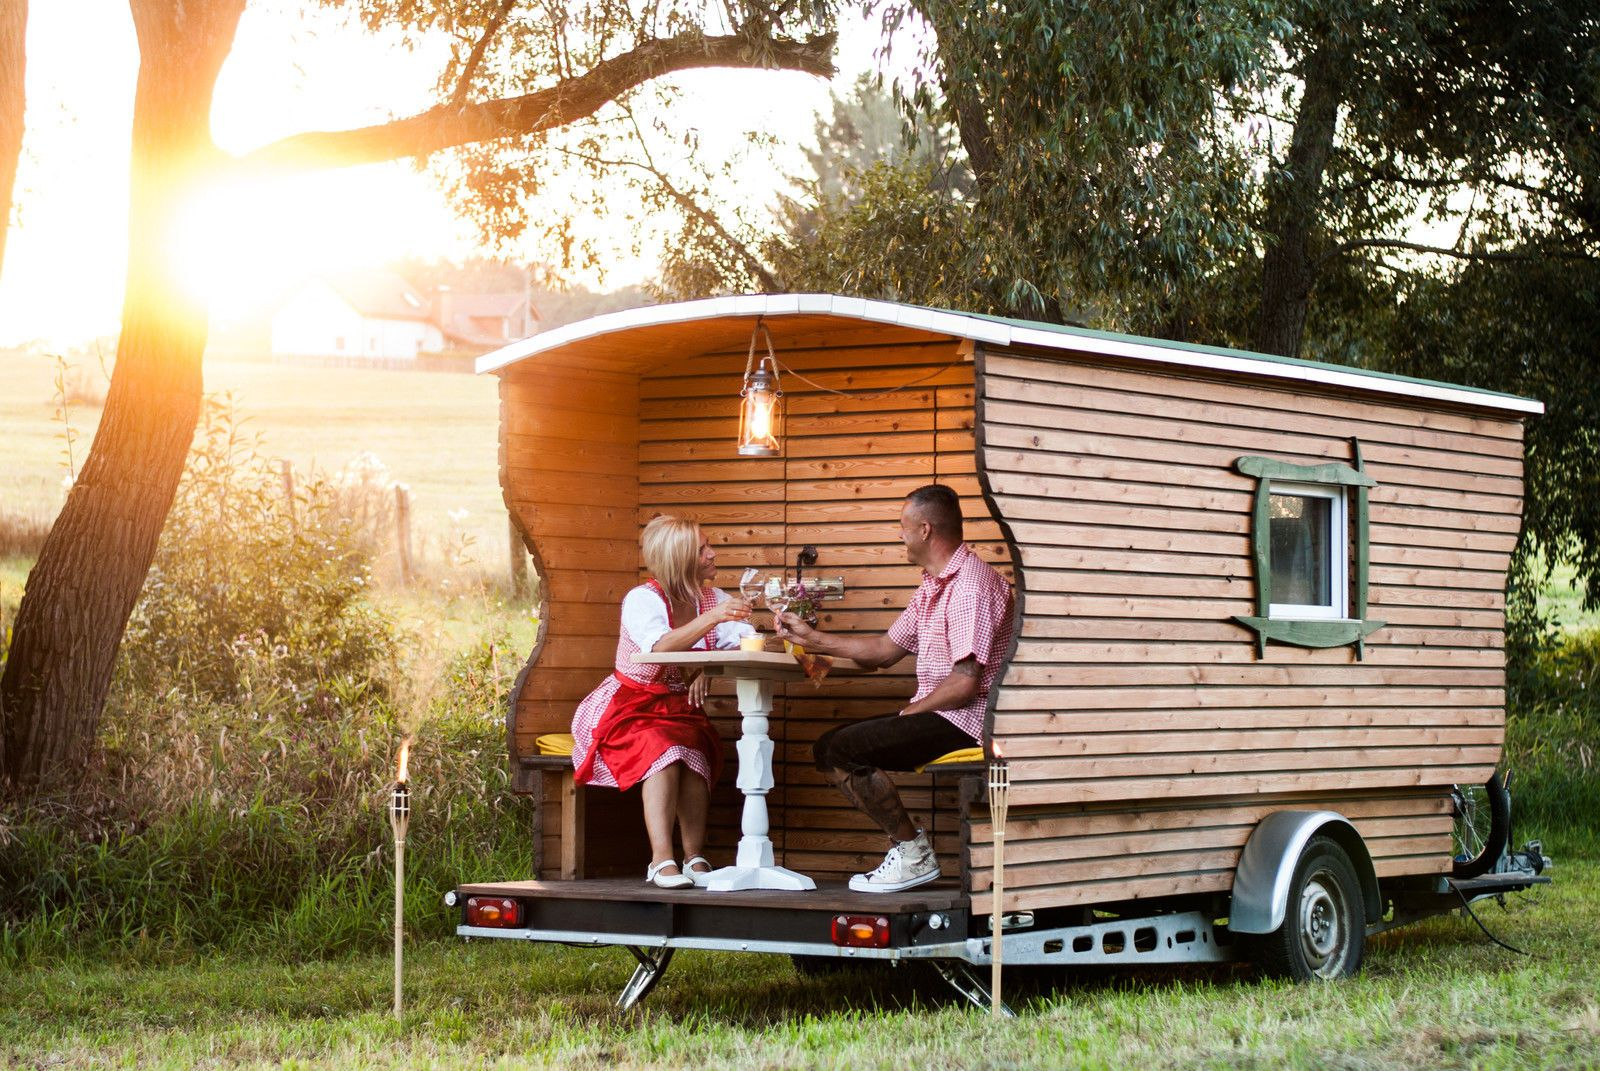 h ttenh nger sch ferwagen tinyhouse wohnwagen holz haus auf r dern ebay small house tiny. Black Bedroom Furniture Sets. Home Design Ideas